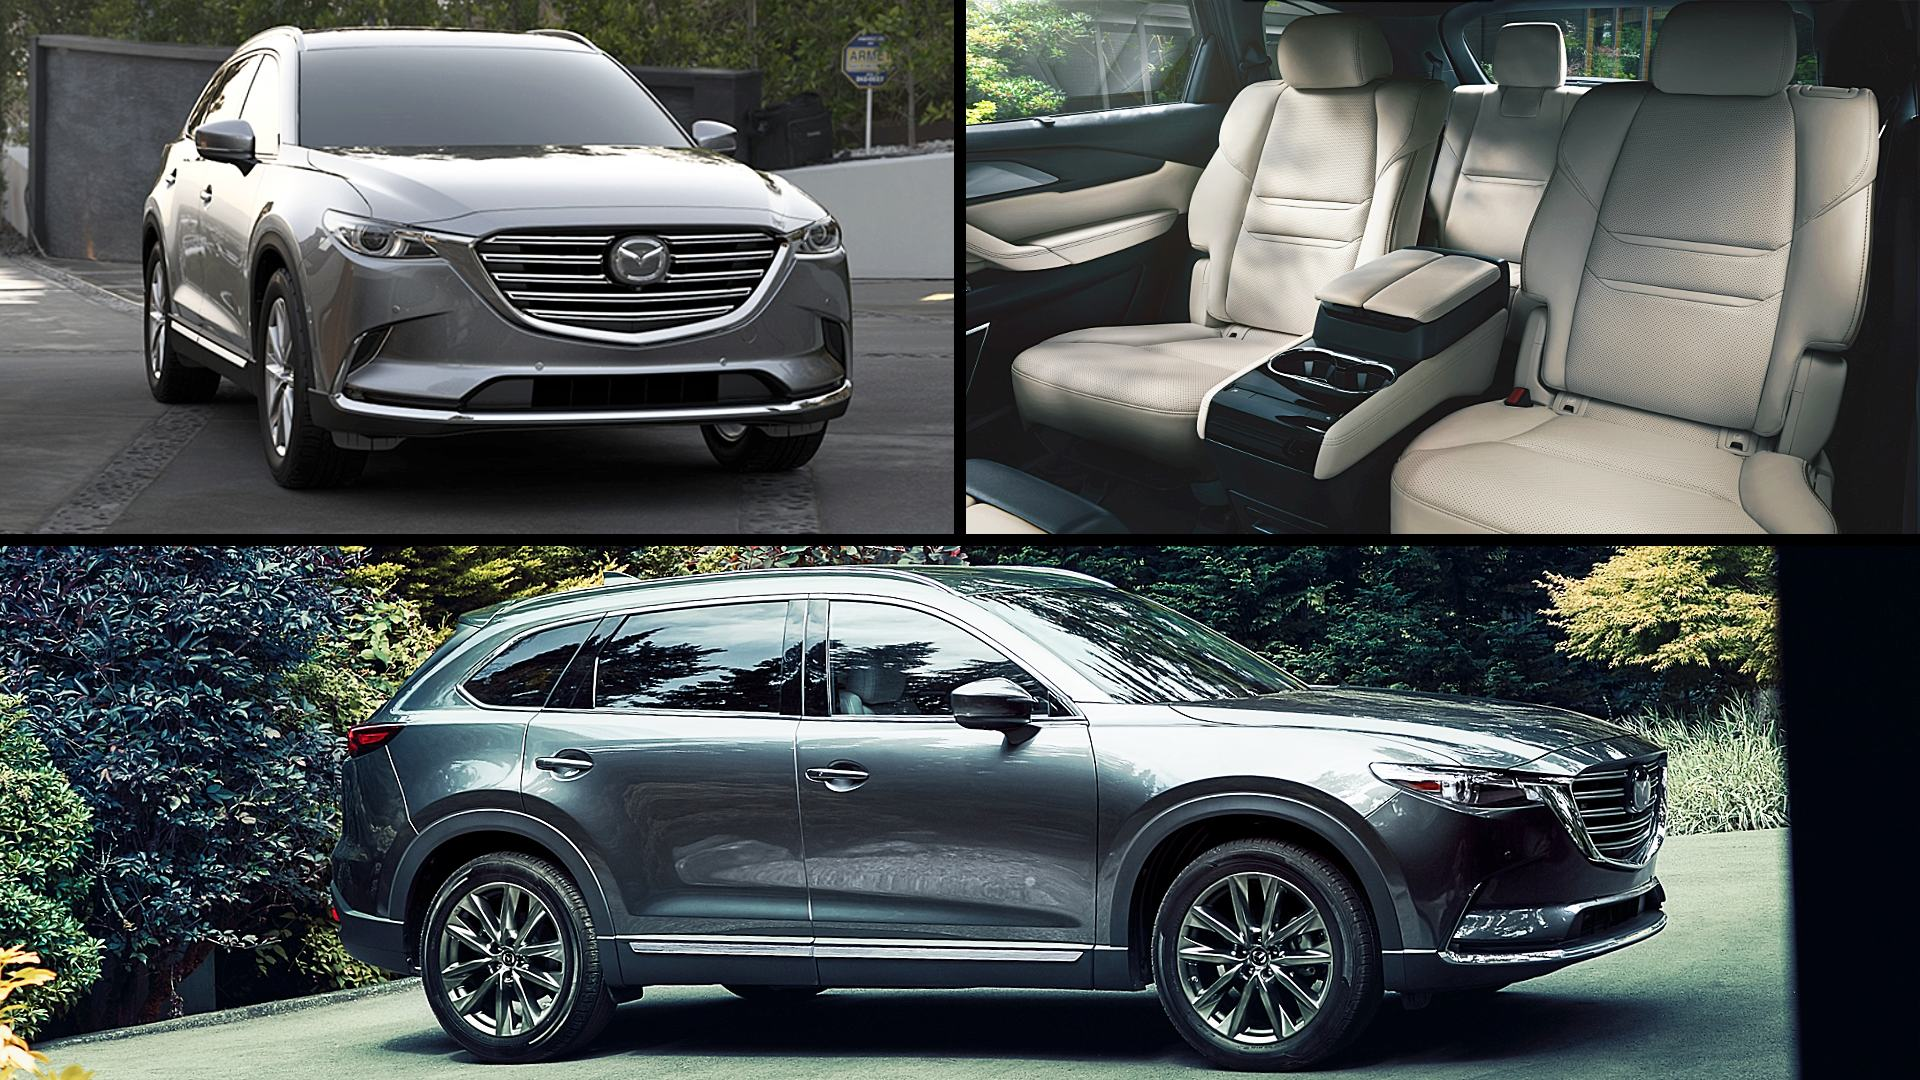 2020 MAZDA CX-9 Grand Touring Images